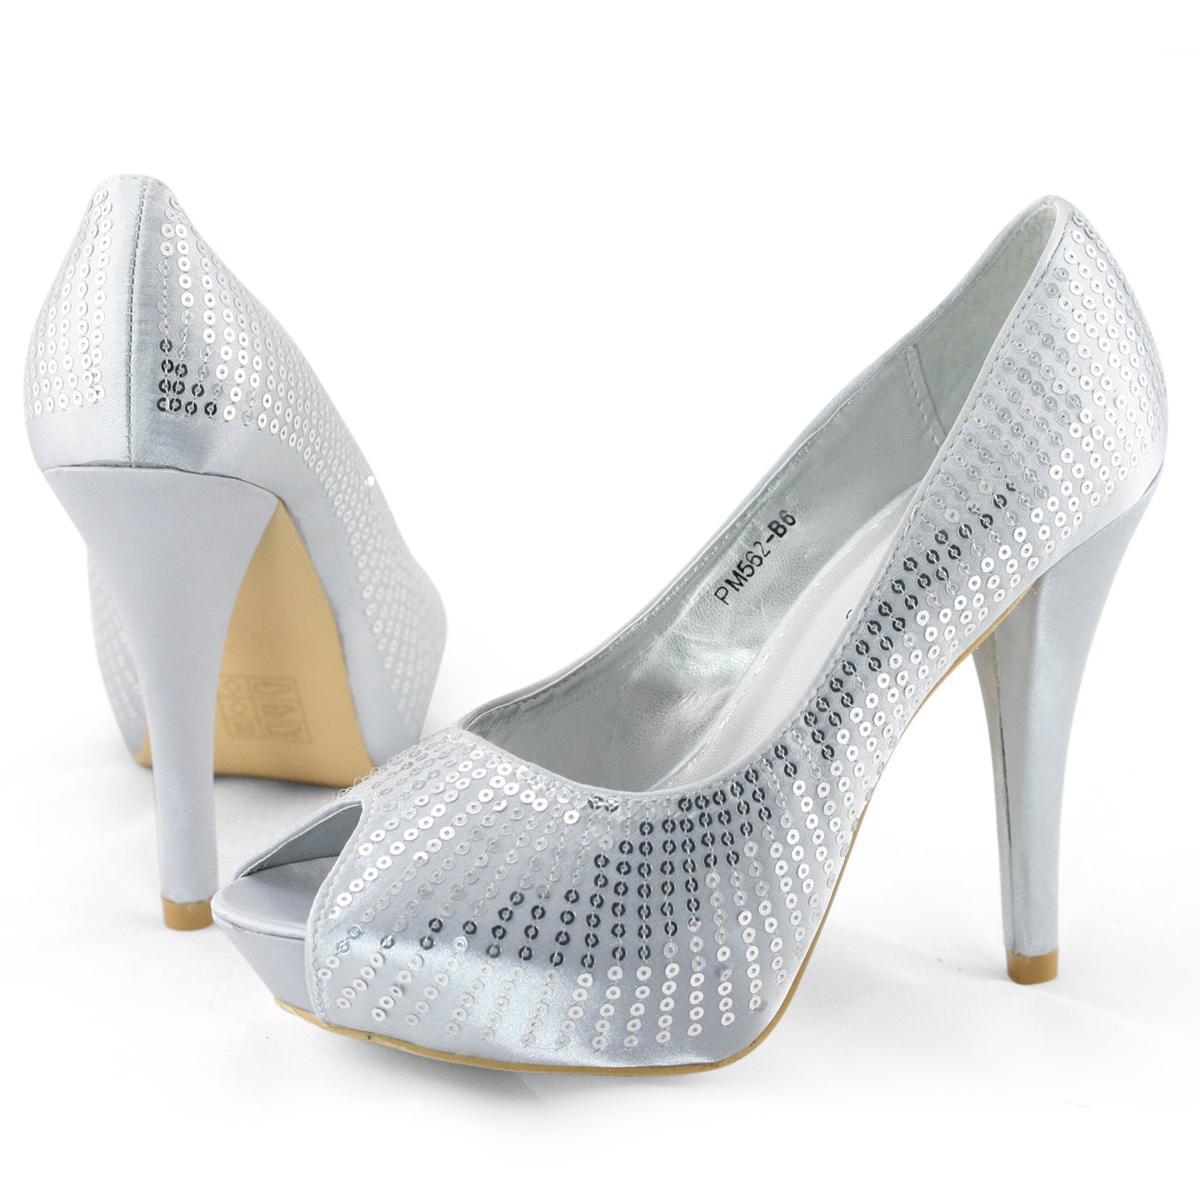 SHOEZY Sexy womens Sequins Open Toes High Heels Platform Court Dress Party Shoes